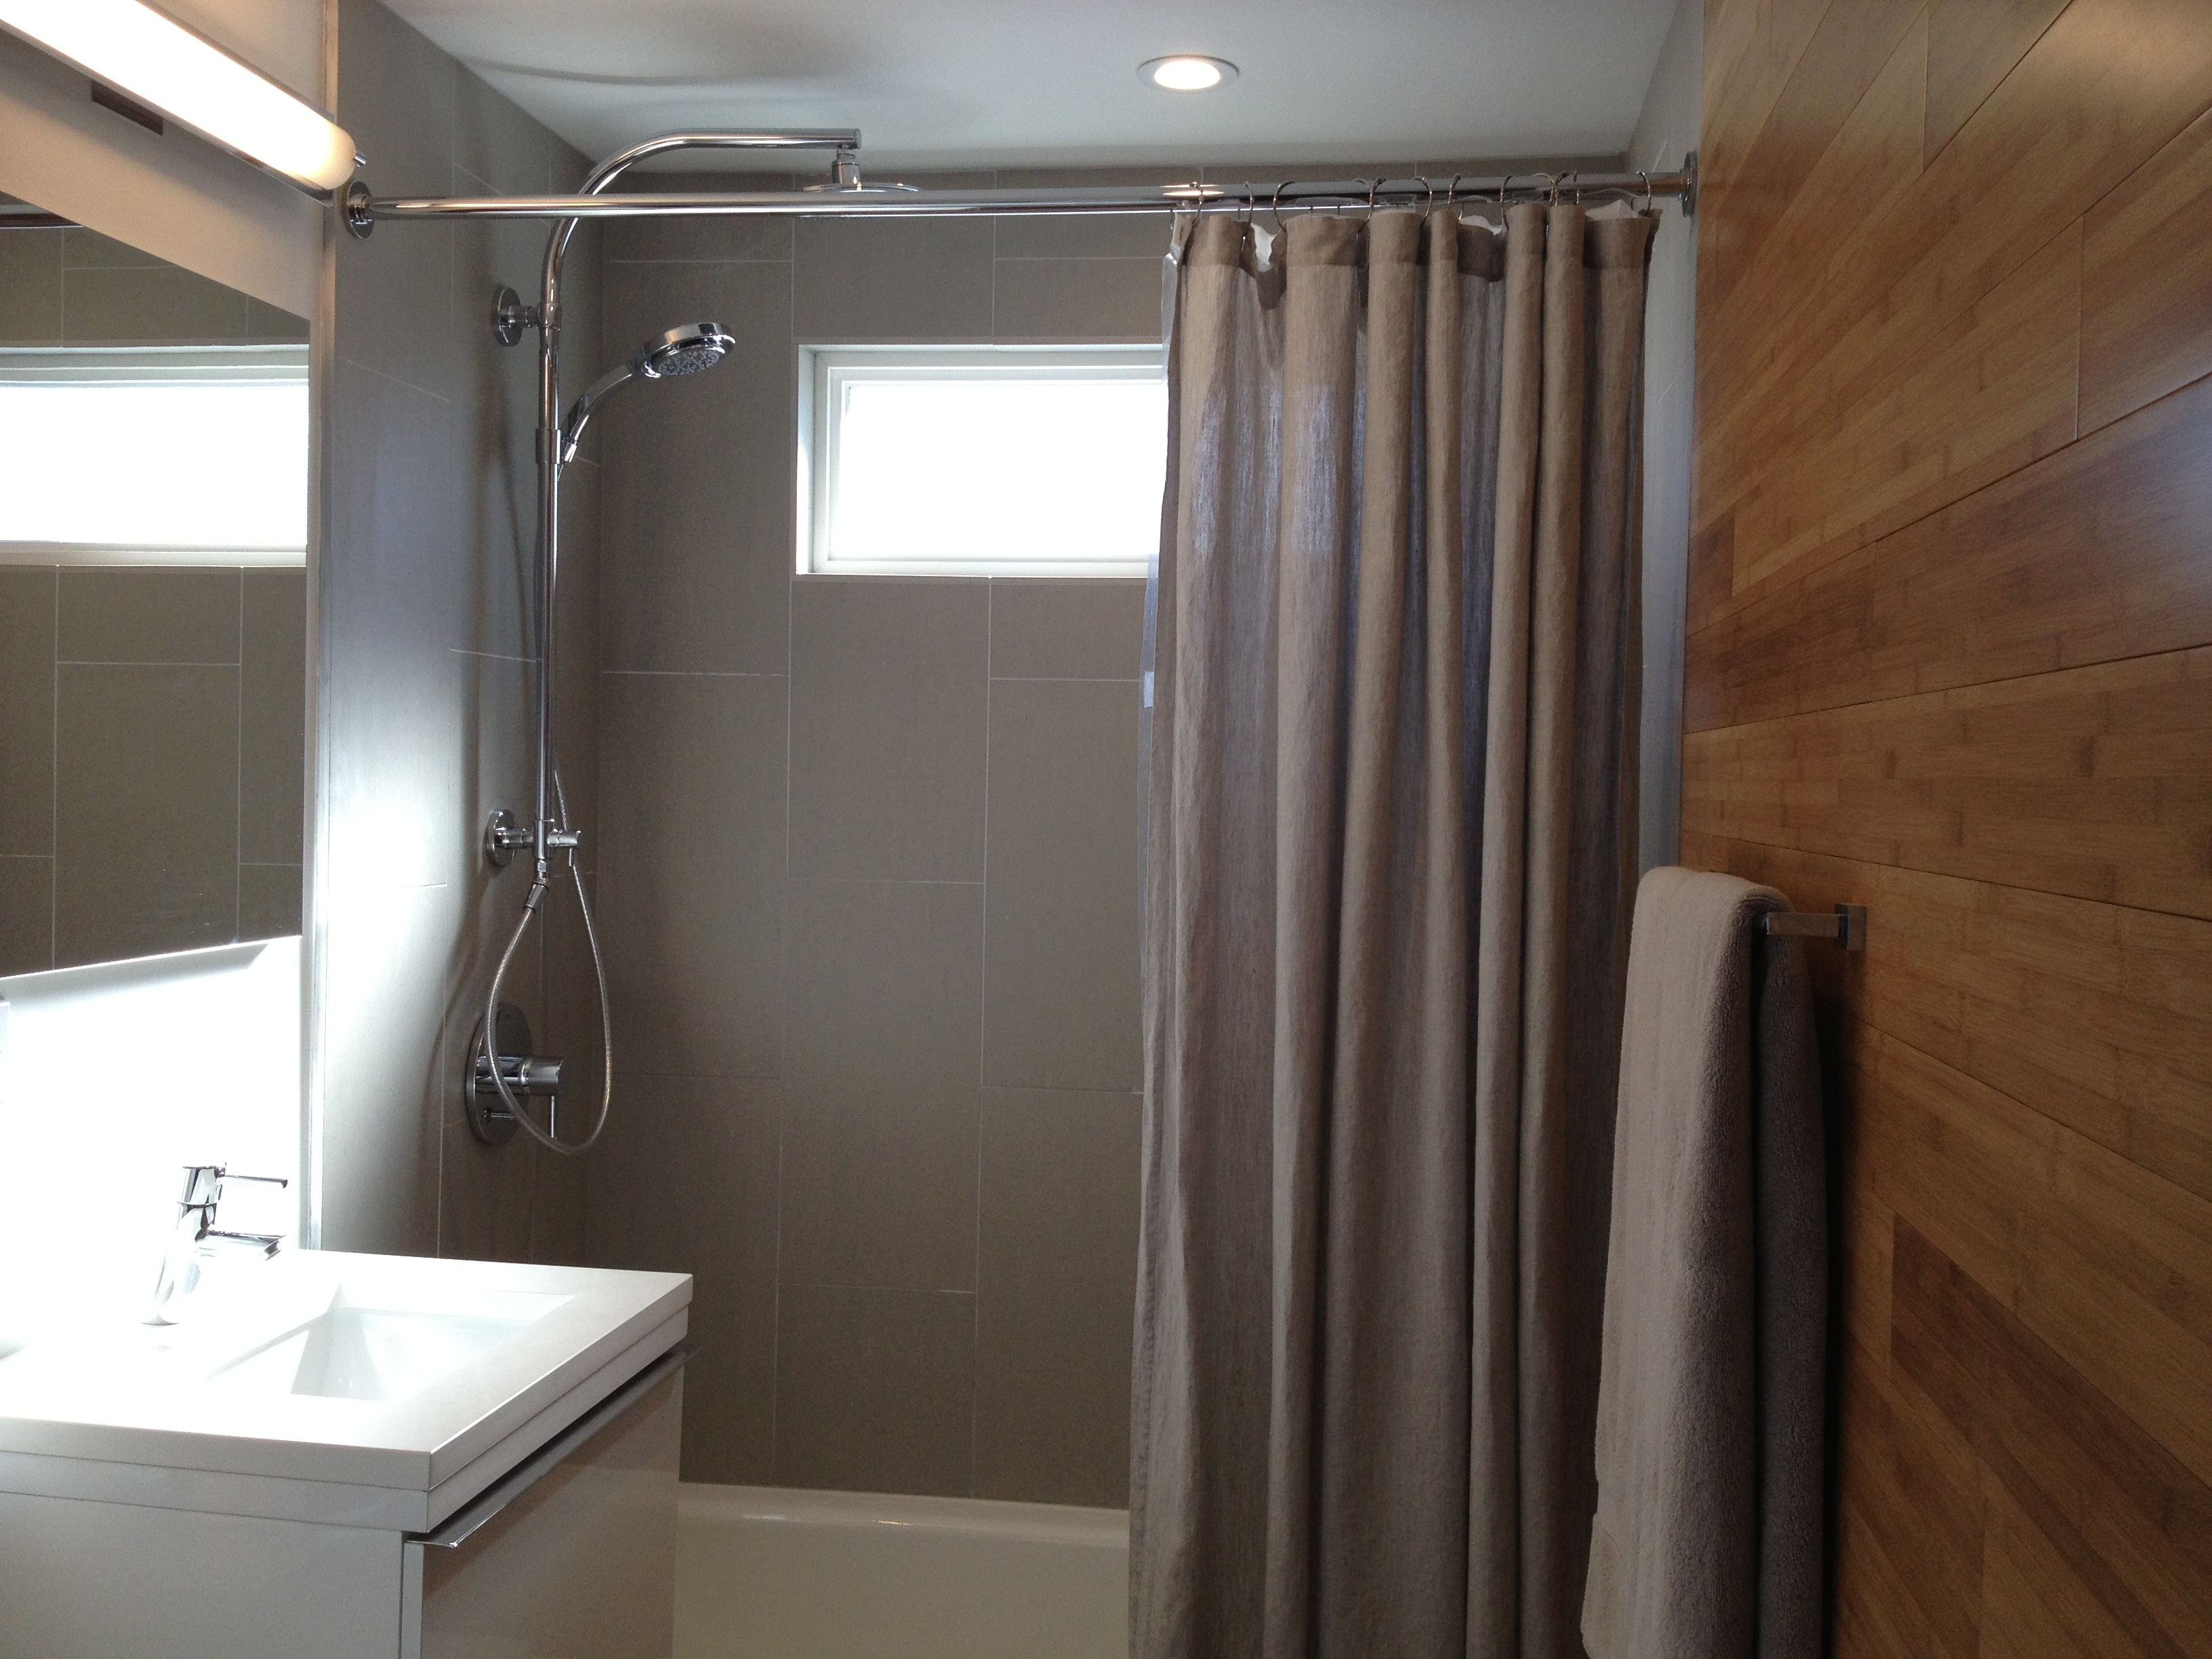 Wall hung vanity & tile installed vertically create visual space.